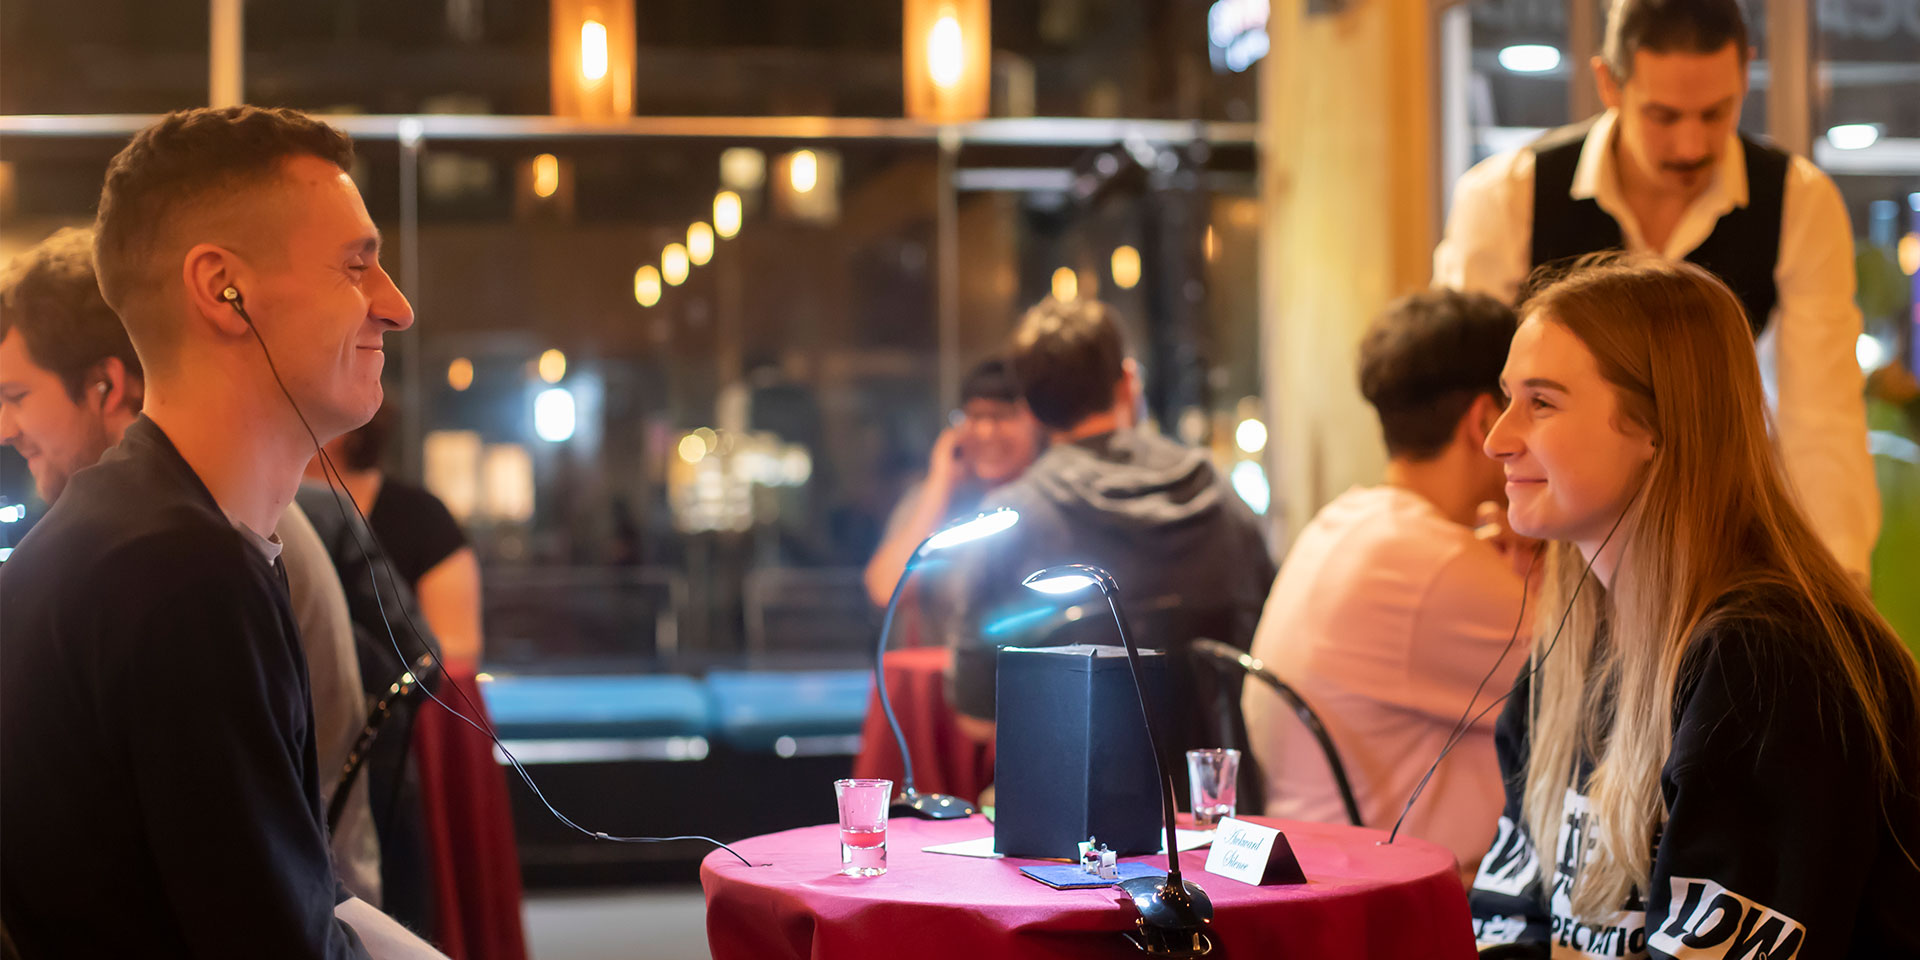 binaural dinner date at a cafe in macau